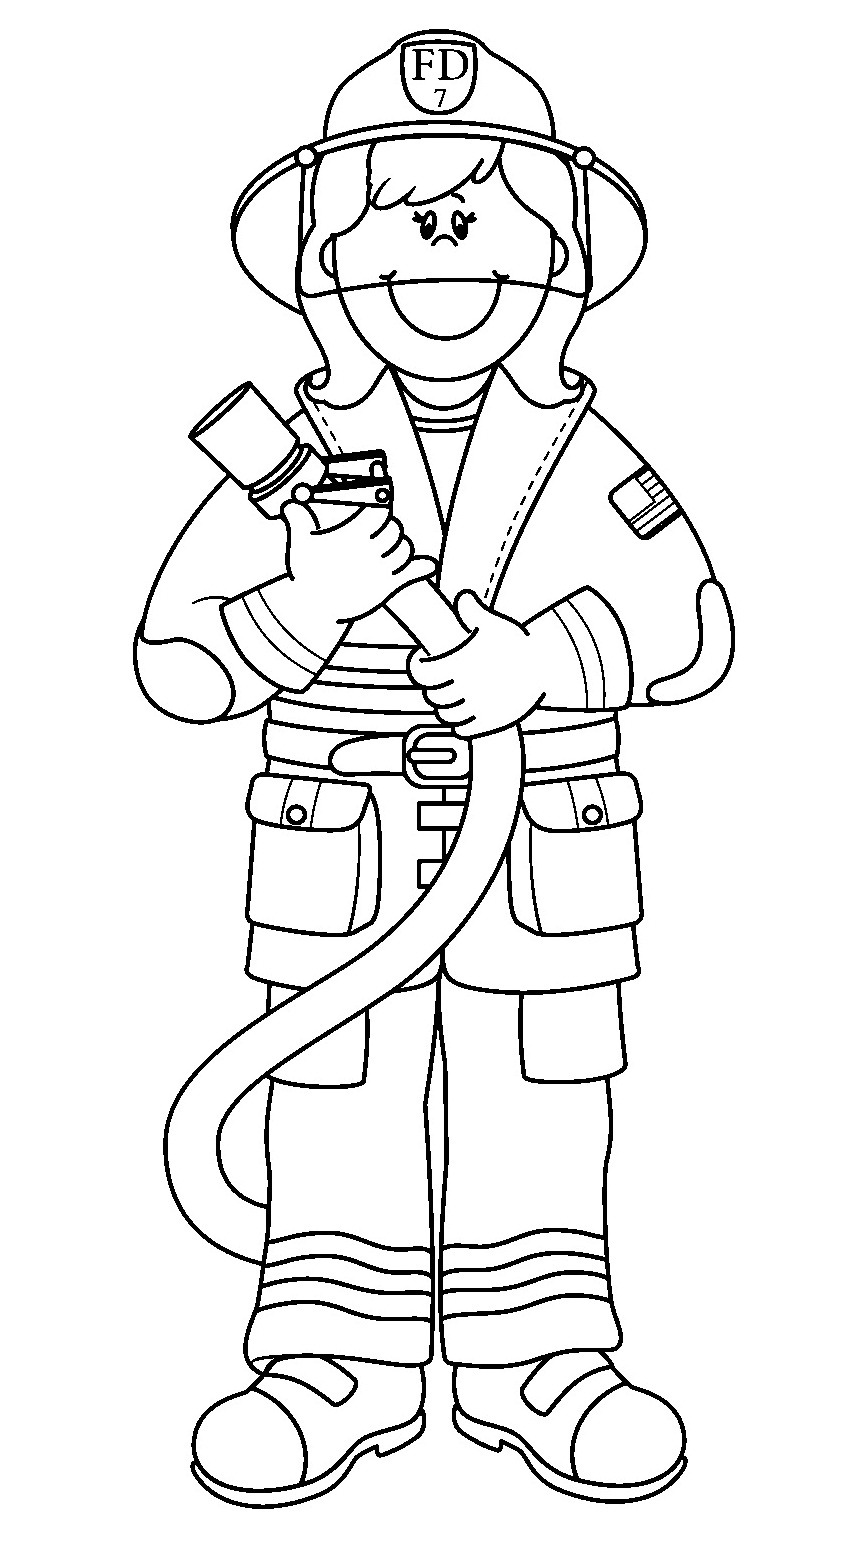 free coloring pages of fireman back to Firefighter Coloring Pages for Preschool  Coloring Firefighter